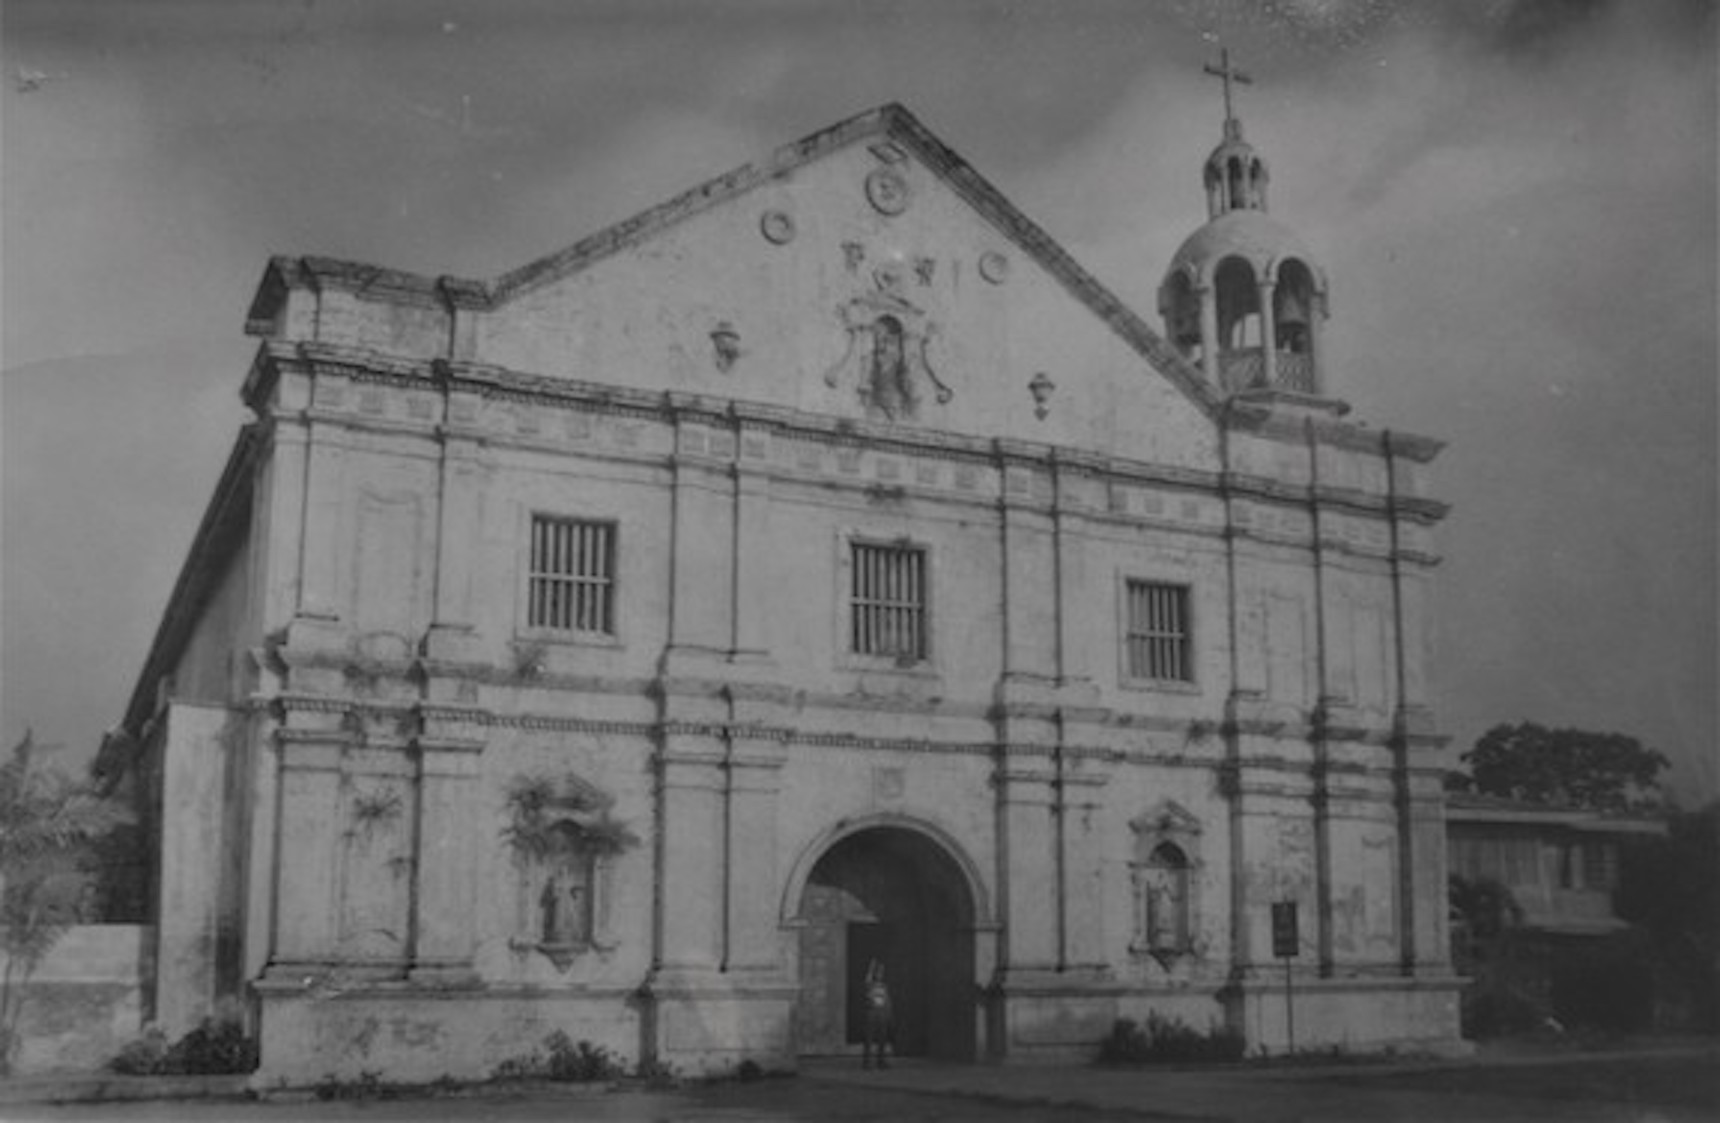 The San Andres Church also known as Masinloc Church in Zambales | Colonial church architecture in the Philippines